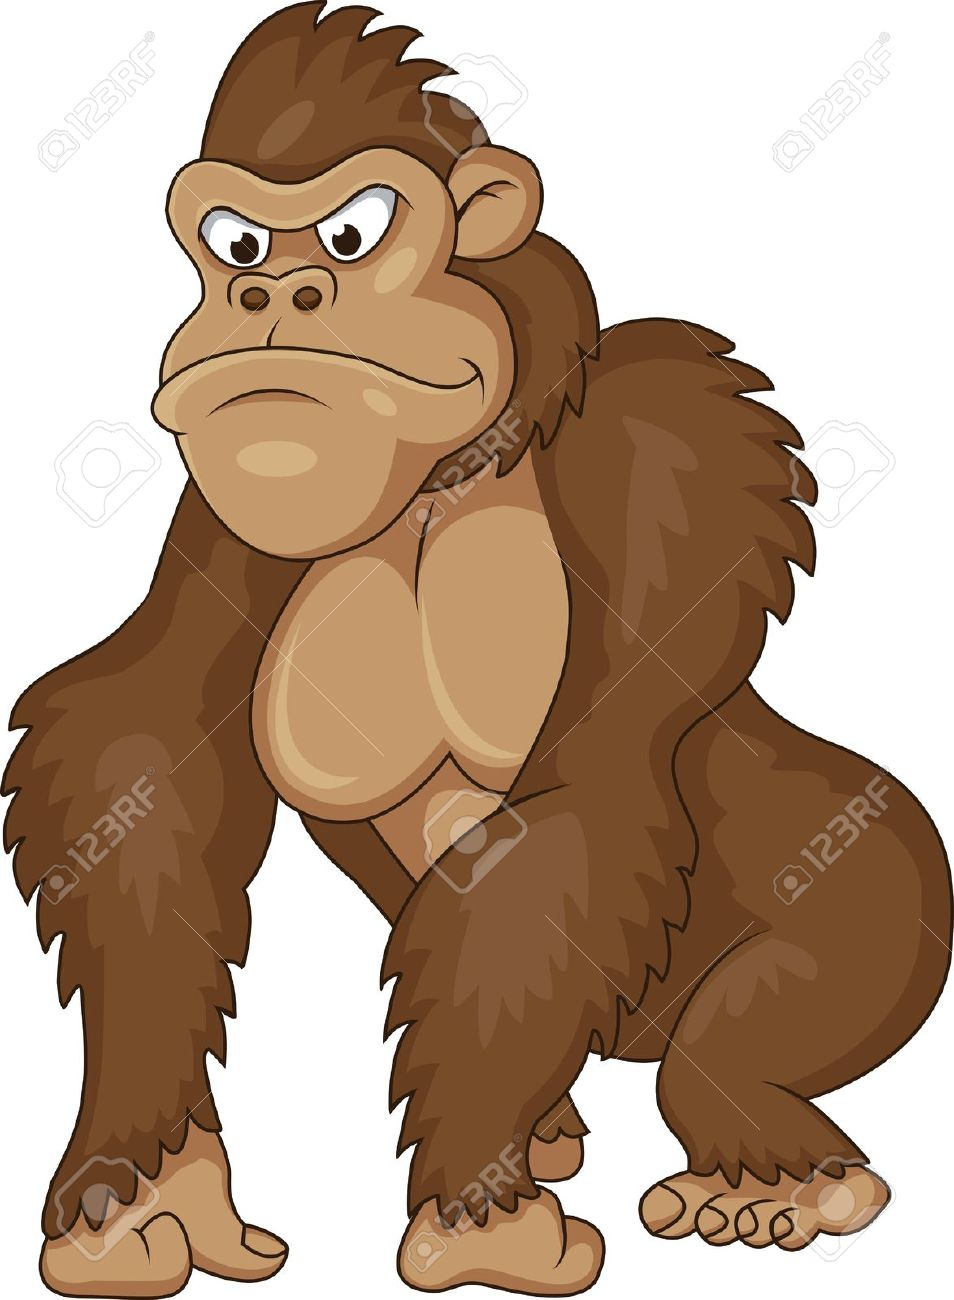 16,907 Apes Stock Illustrations, Cliparts And Royalty Free Apes.